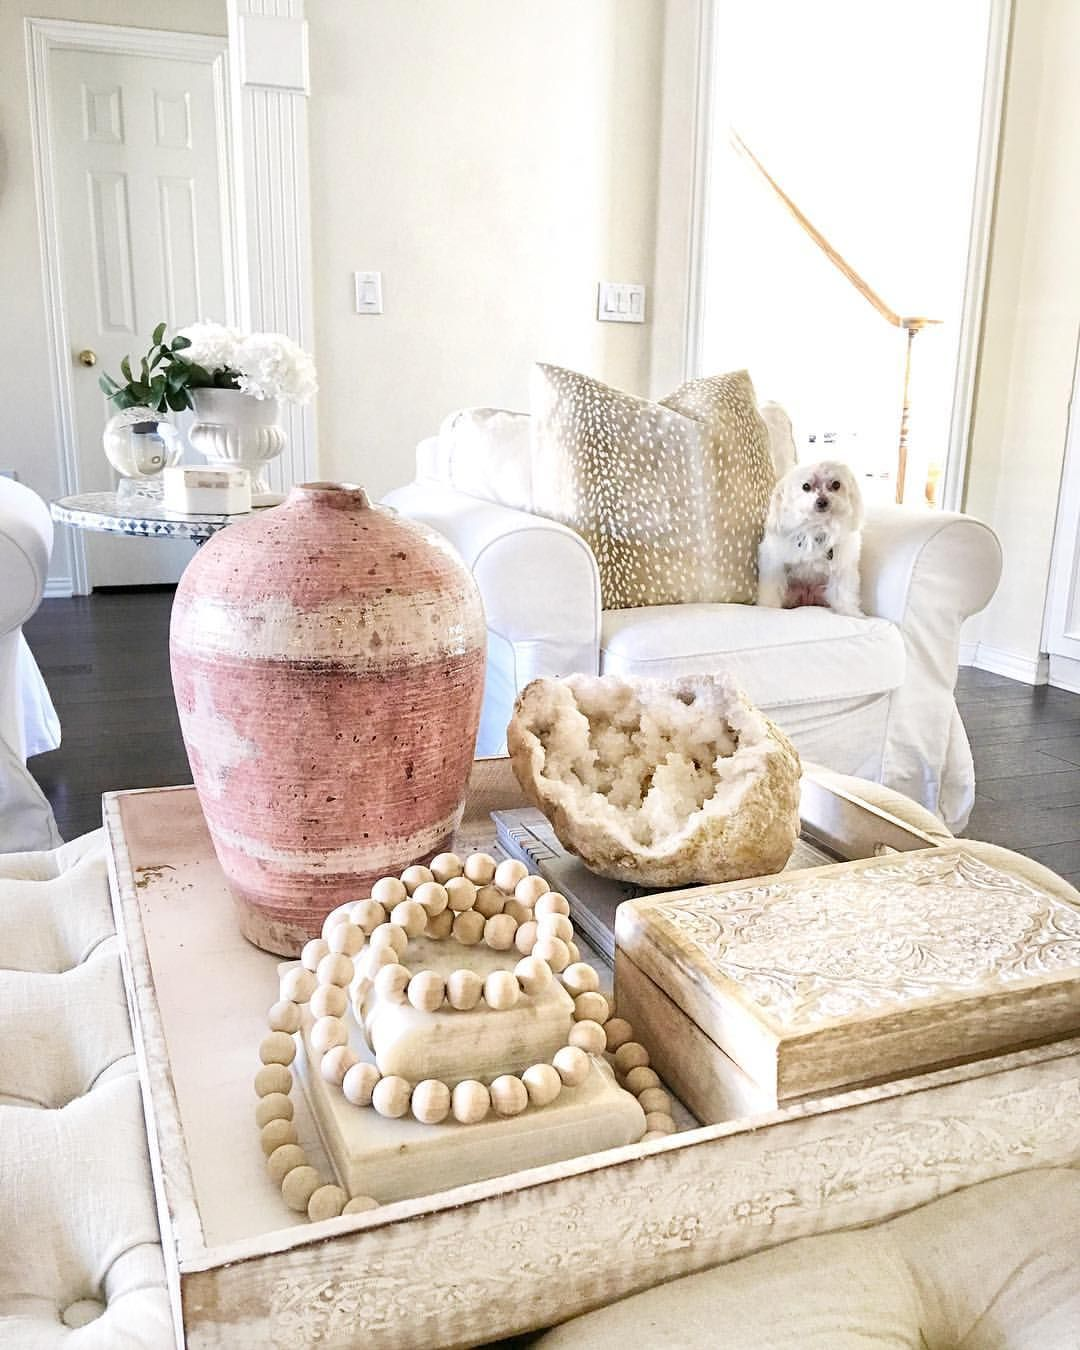 From Thriftyniftynest Blush Pink Blush Pink Decor White Living Room White Furniture How To S Pink Home Decor White Furniture Decor Coffee Table Decor Tray